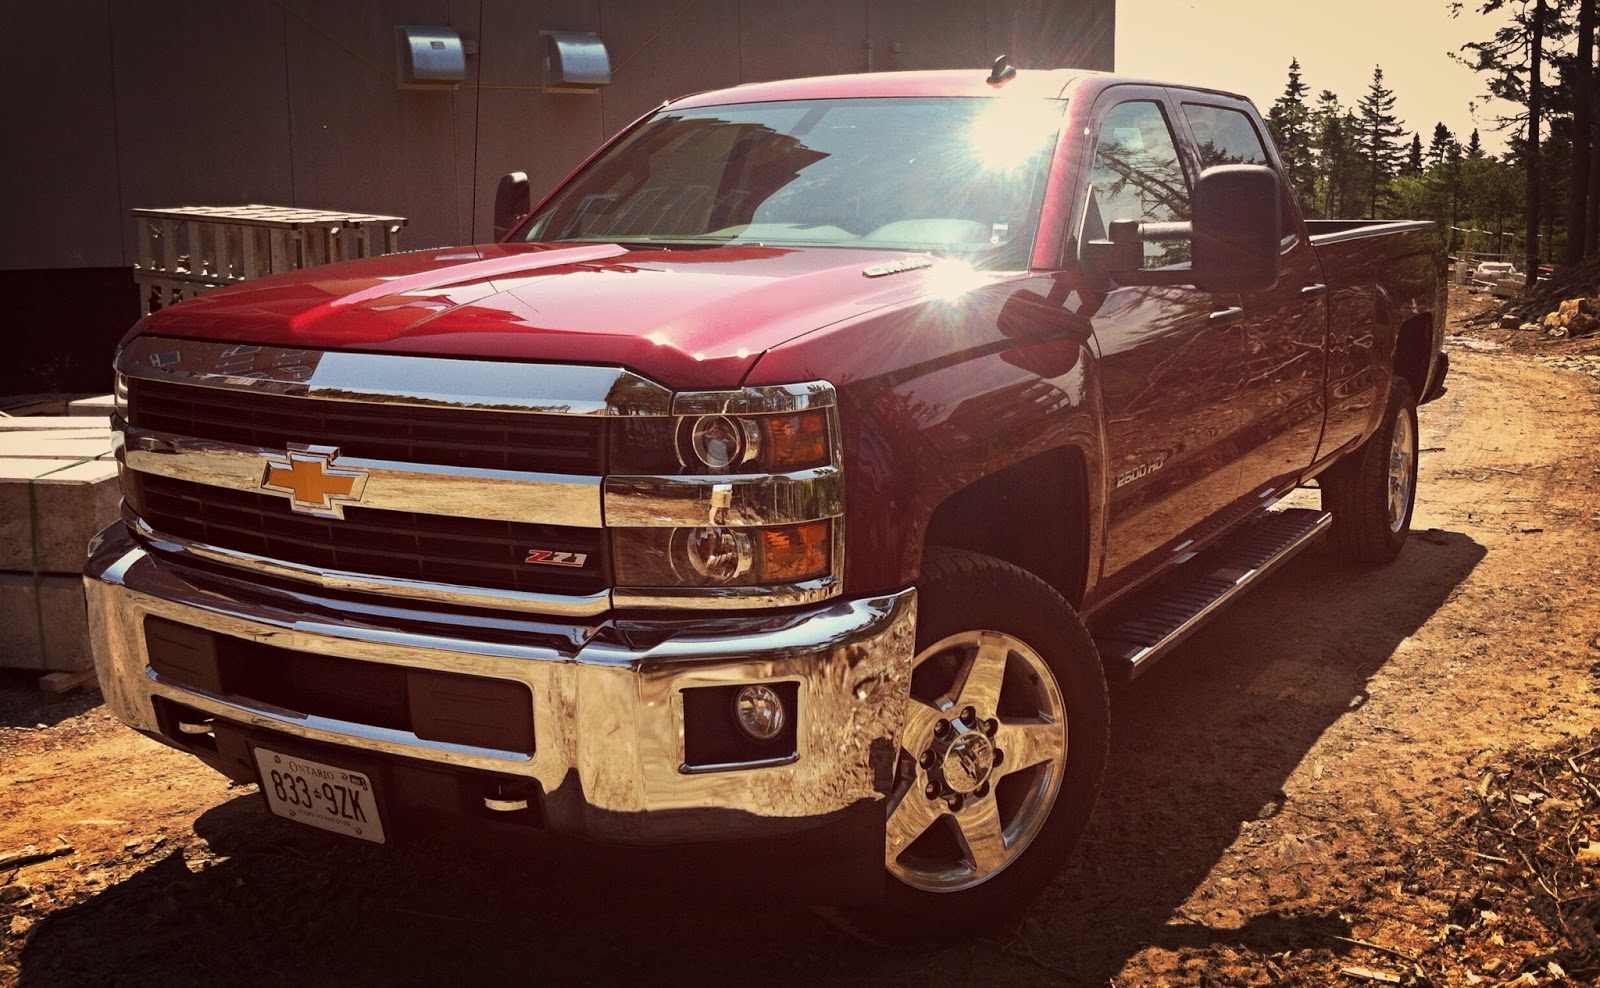 This Duramax-powered 2015 Chevrolet Silverado 2500 HD possesses an as